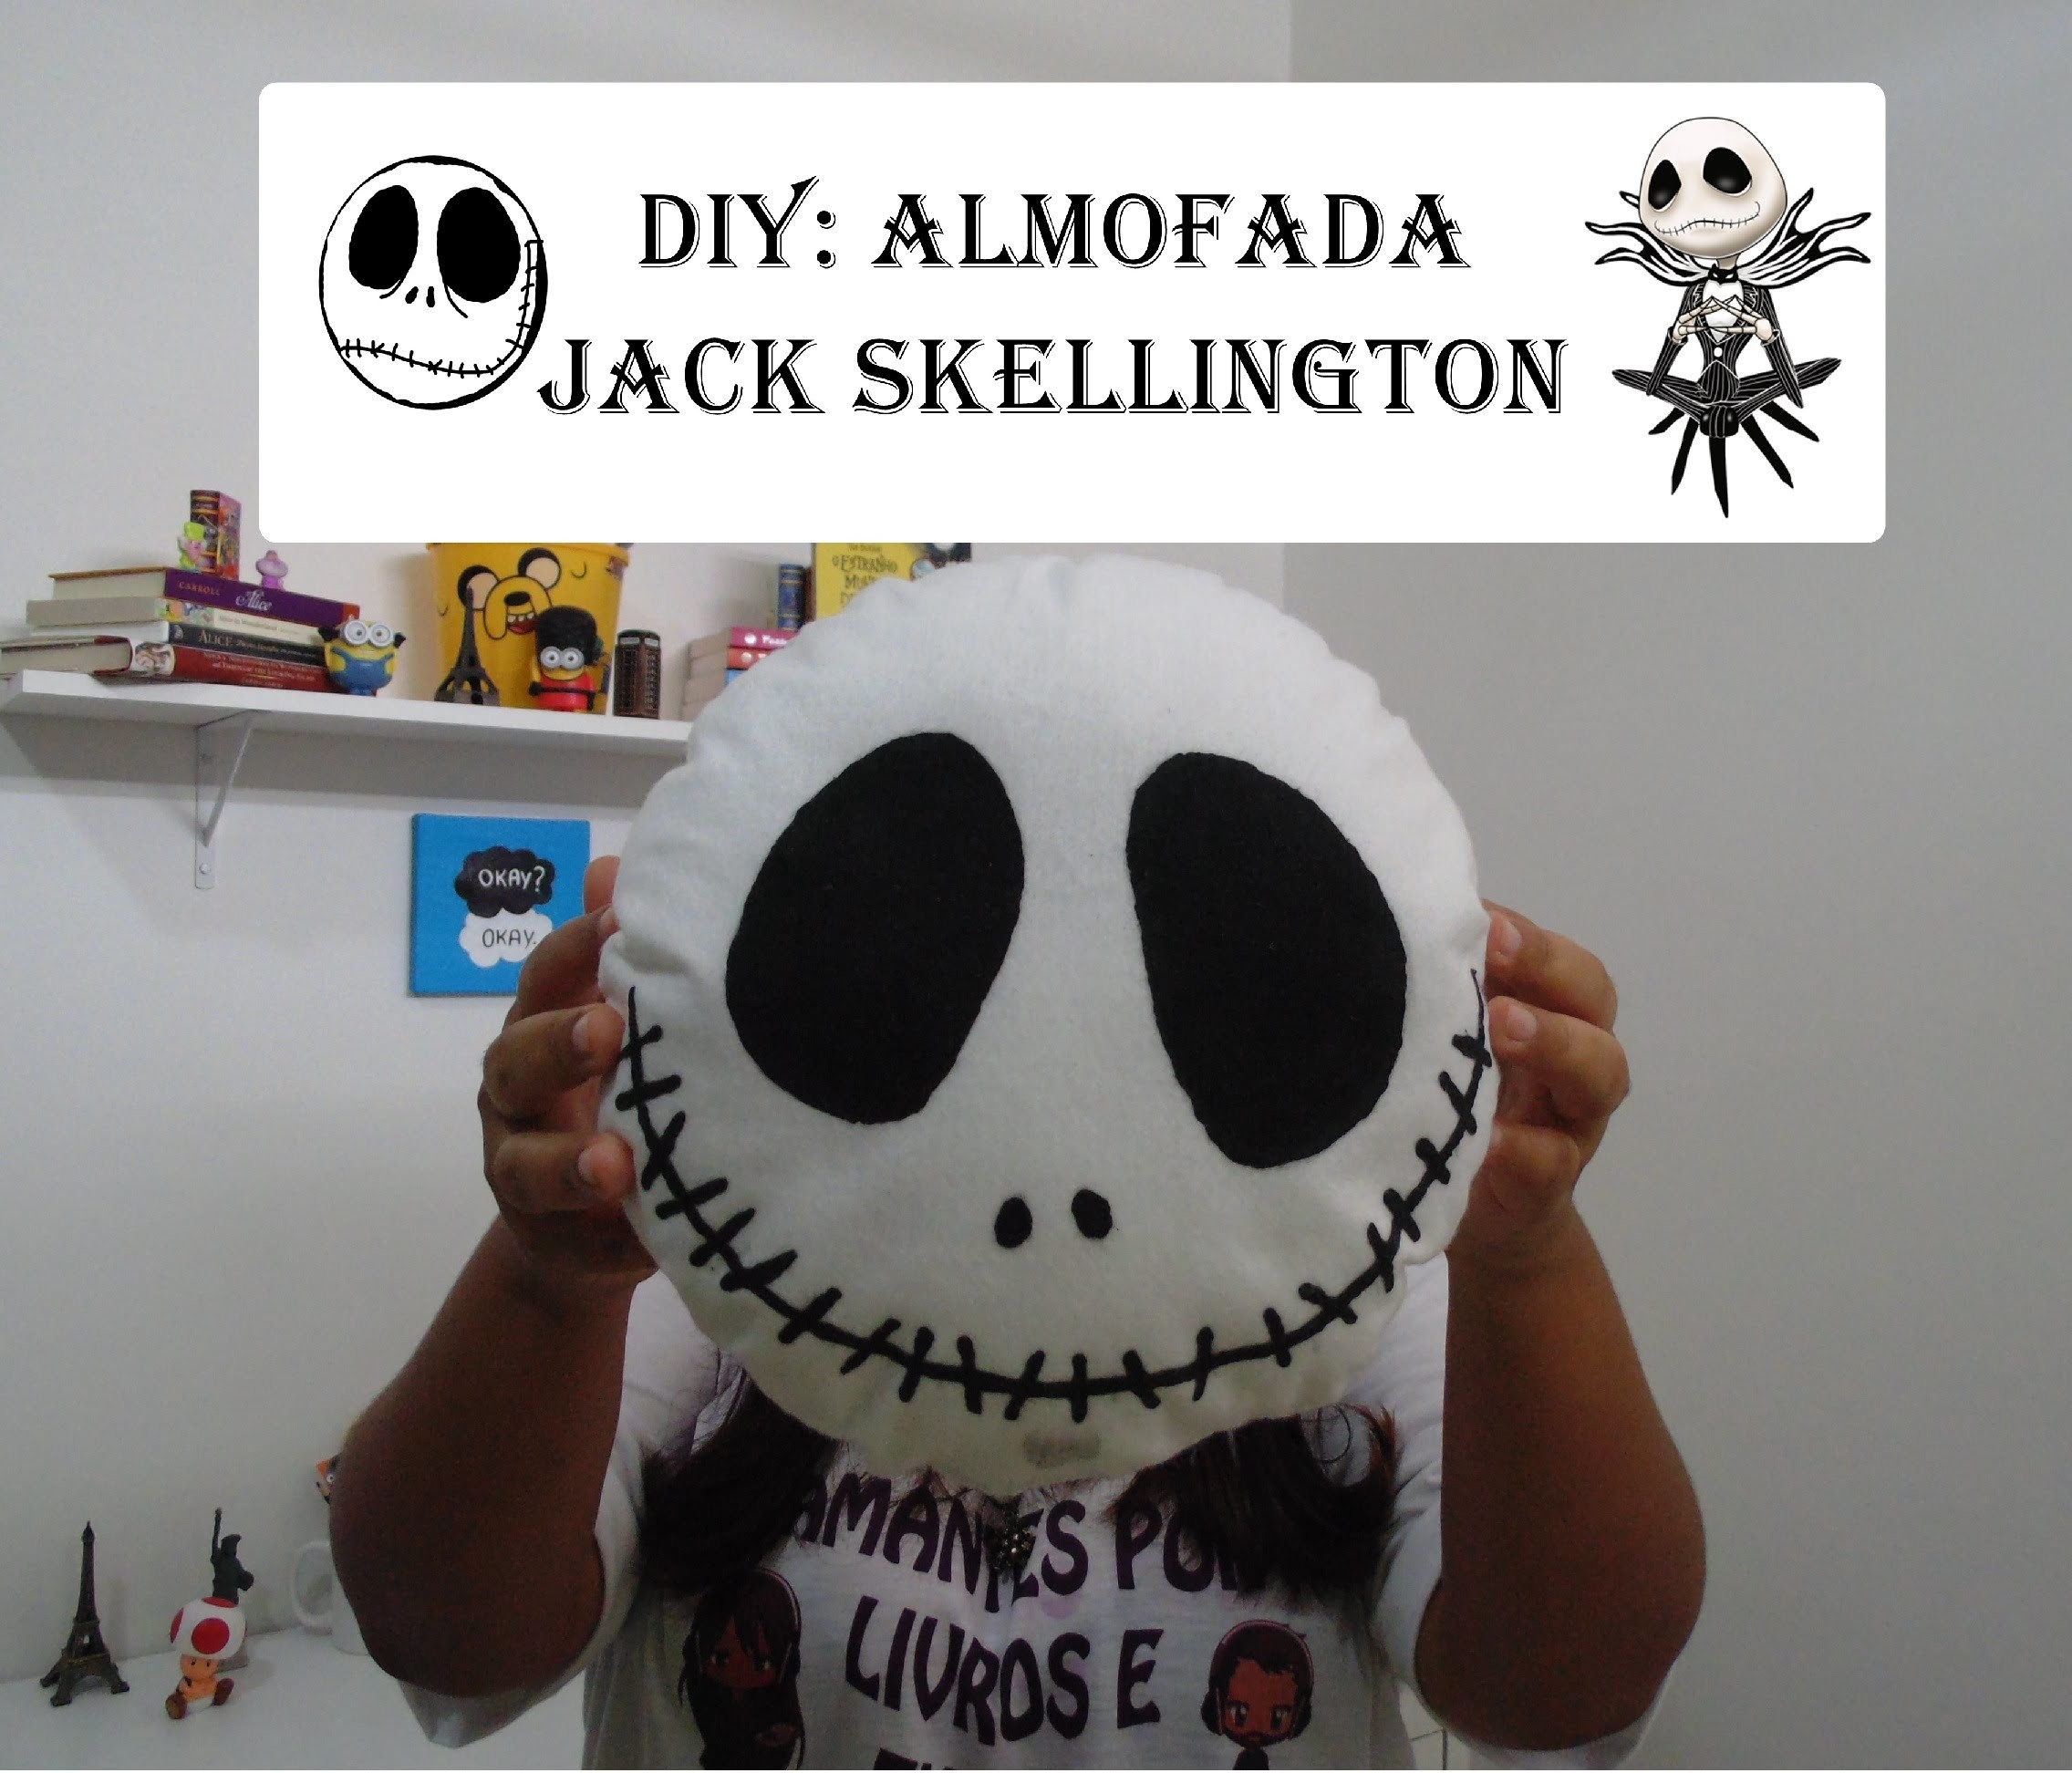 DIY Almofada do Jack skellington